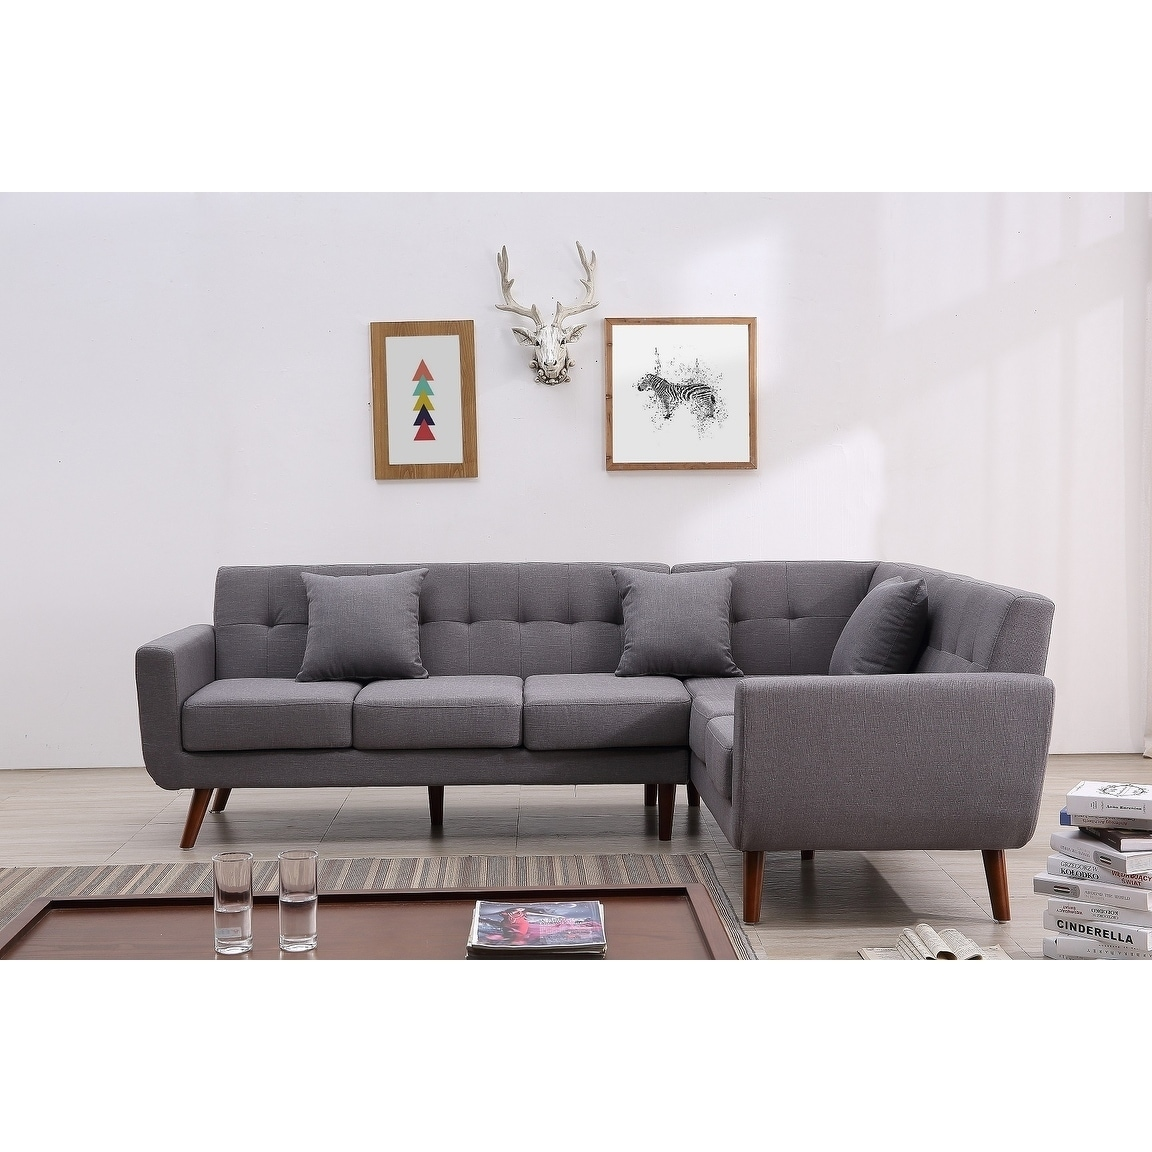 Mid Century Right Facing Tufted Linen Fabric Upholstered L Shaped Sectional Sofa